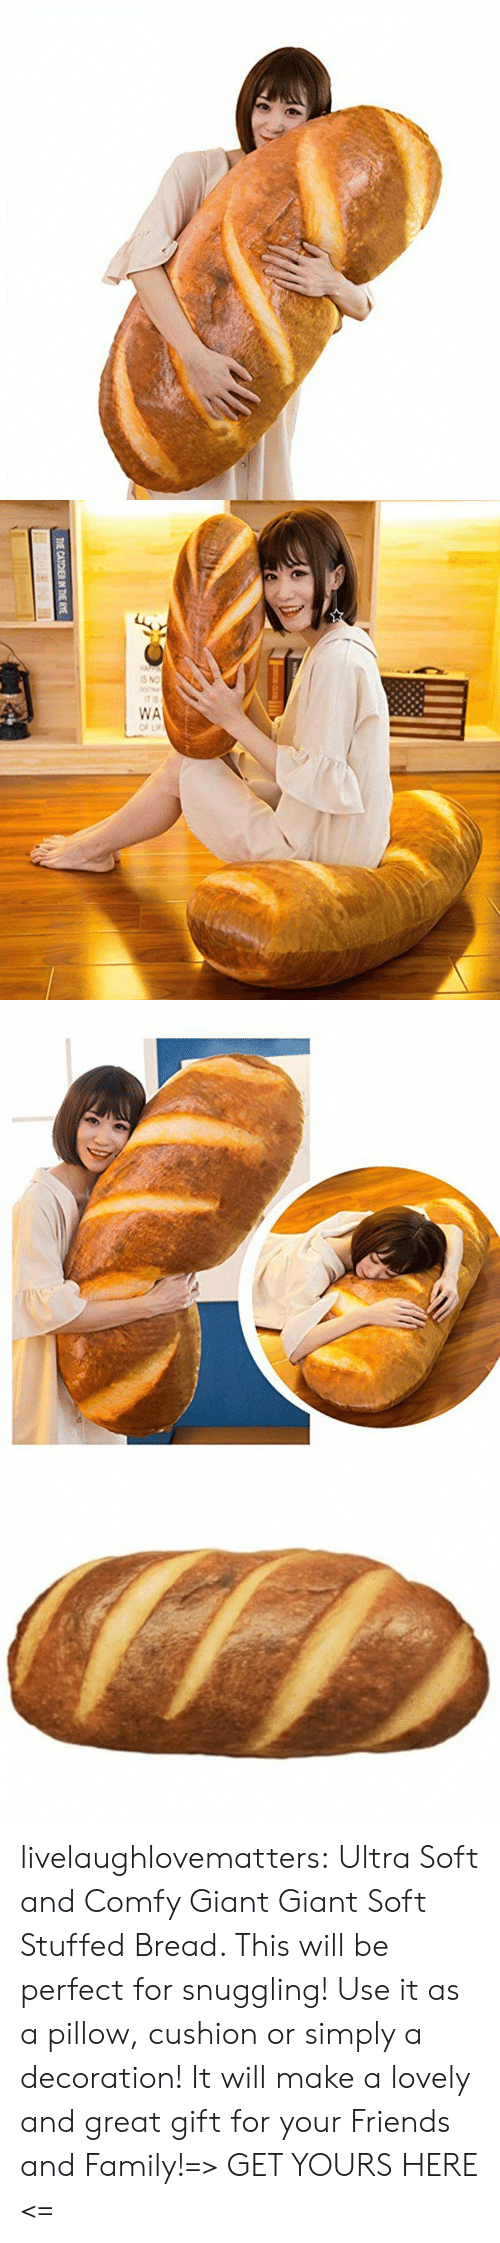 Family, Friends, and Tumblr: THE CATCHER IN THE RYE livelaughlovematters:  Ultra Soft and Comfy Giant Giant Soft Stuffed Bread. This will be perfect for snuggling! Use it as a pillow, cushion or simply a decoration! It will make a lovely and great gift for your Friends and Family!=> GET YOURS HERE <=